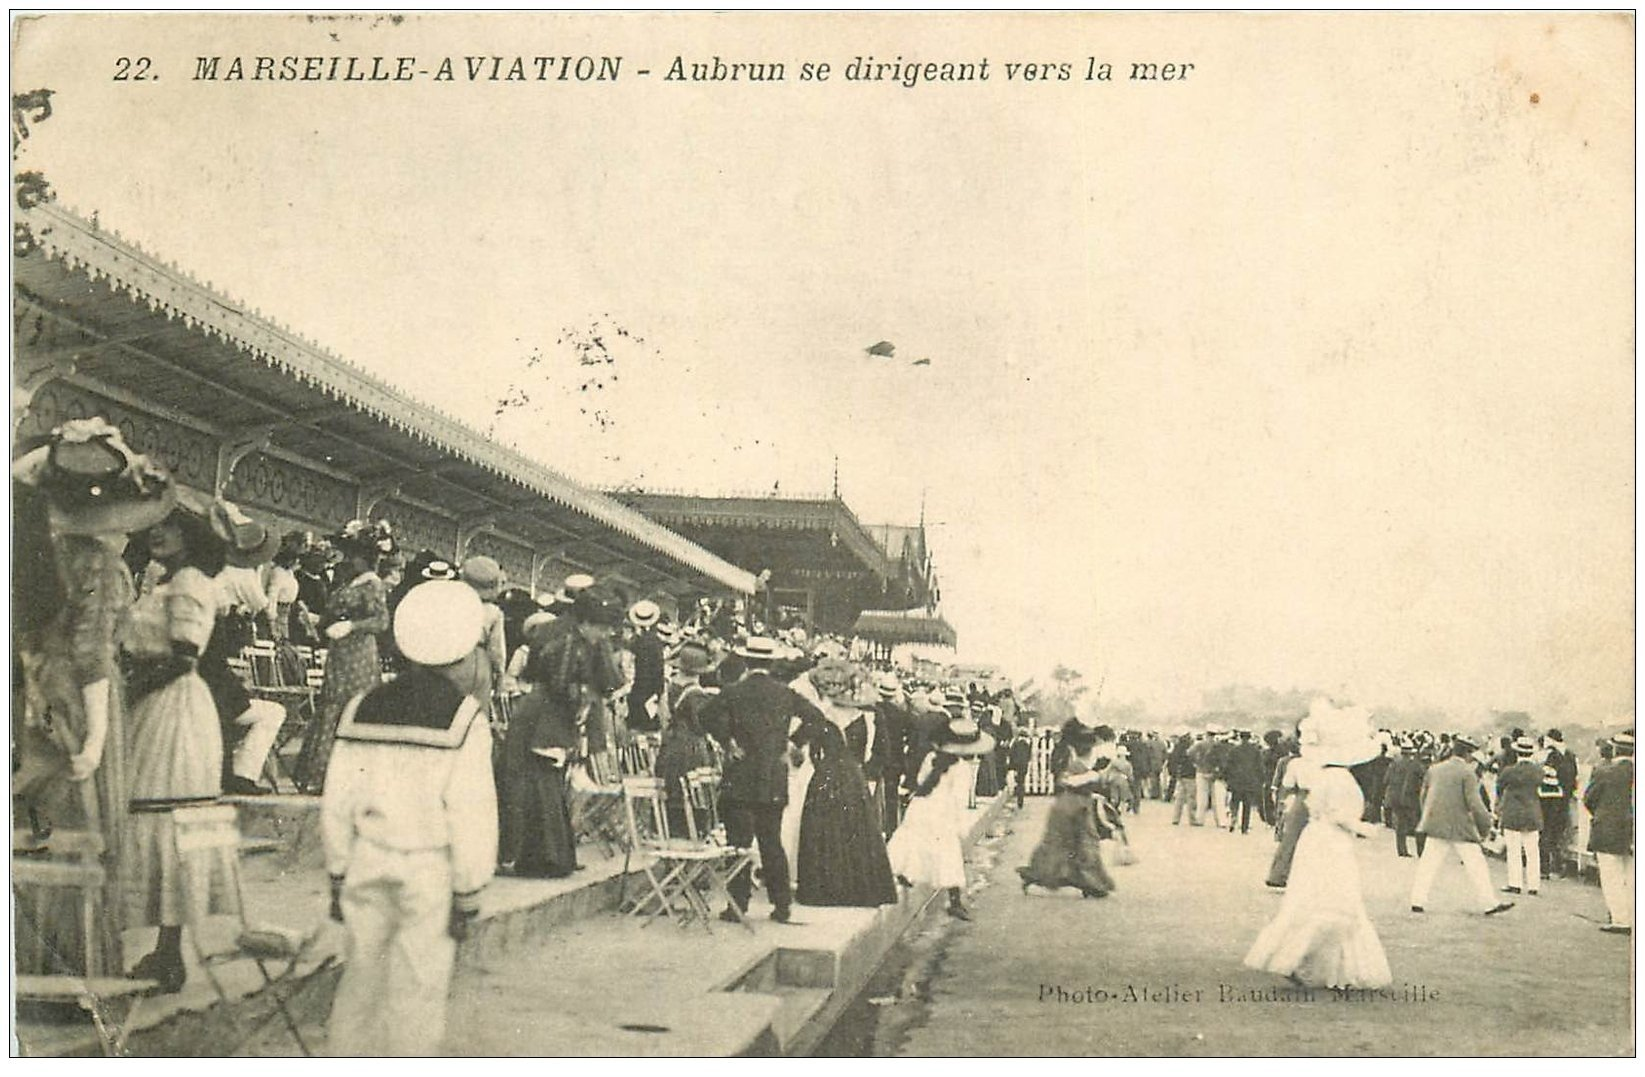 carte postale ancienne 13 MARSEILLE. Aviation. Aubrun de dirigeant vers la mer 1910. Aéroplane Avion Meeting Aviateur...